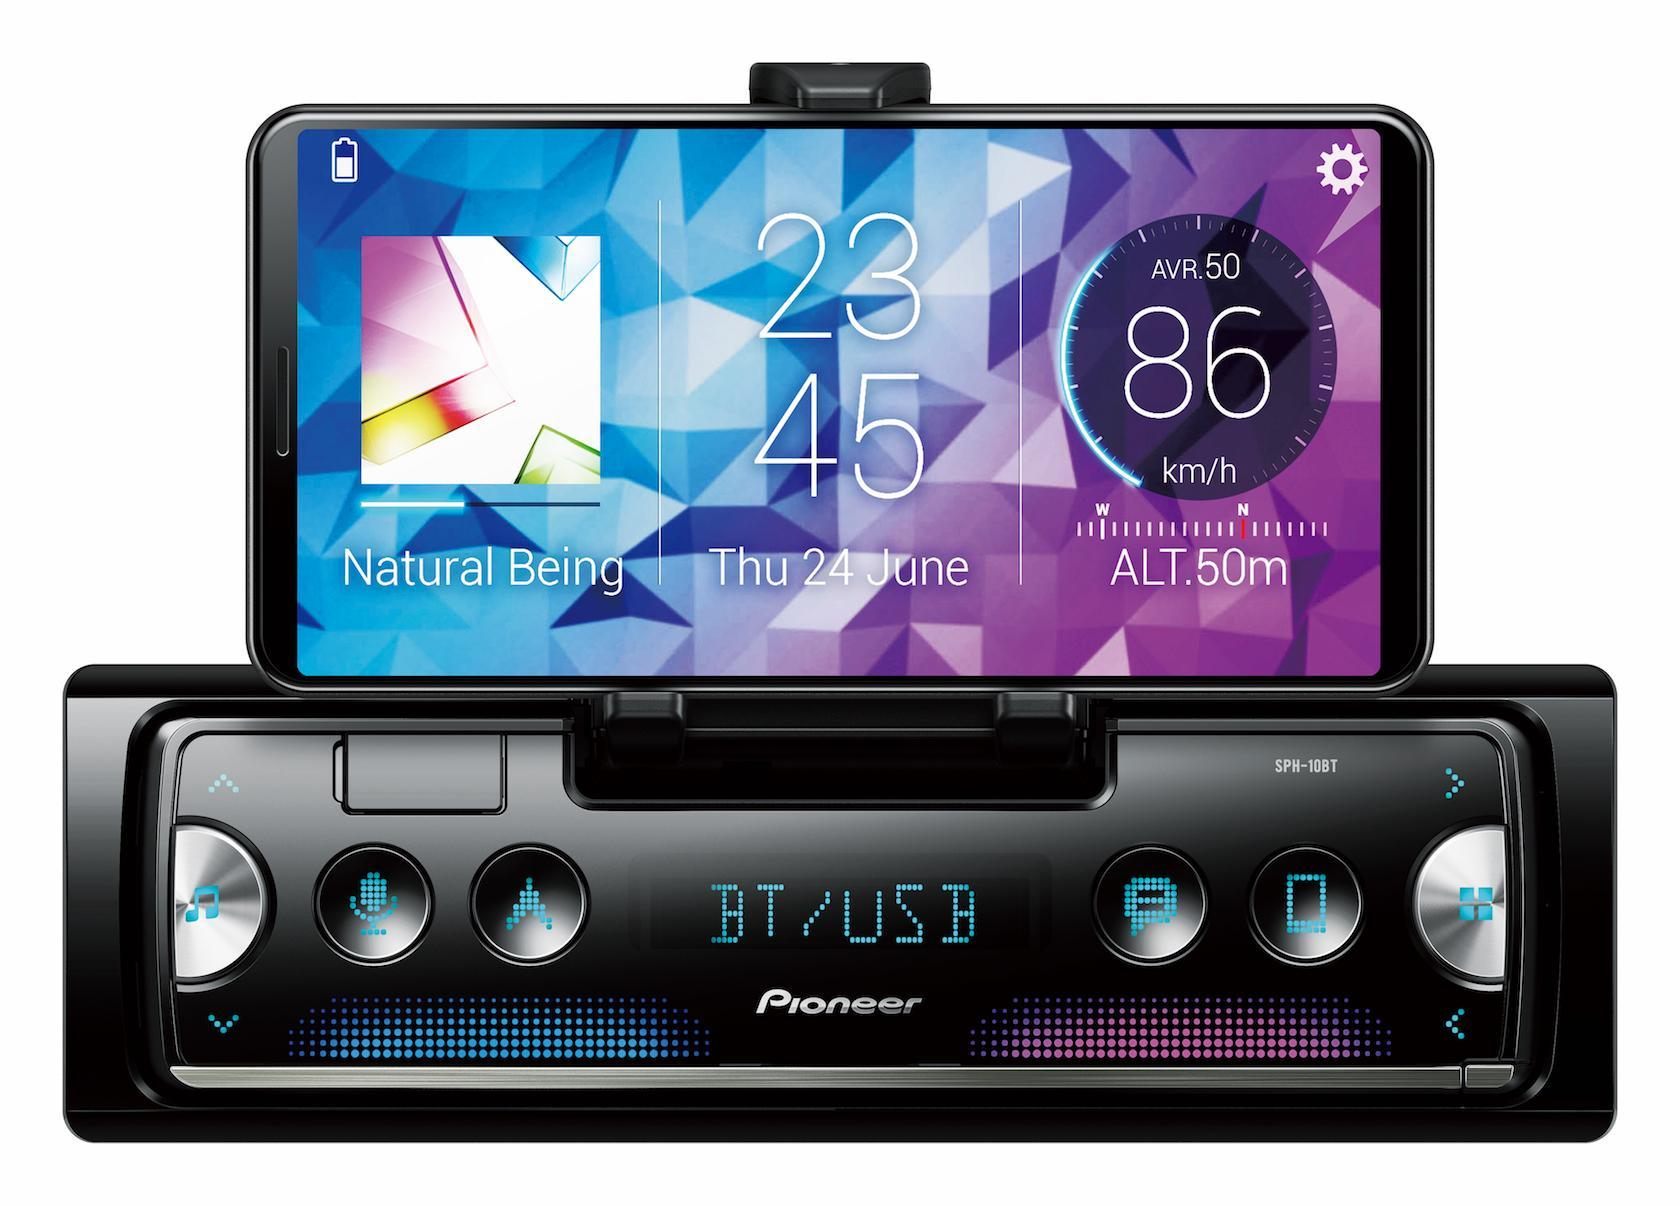 Pioneer makes your smartphone a clever dashboard touchscreen